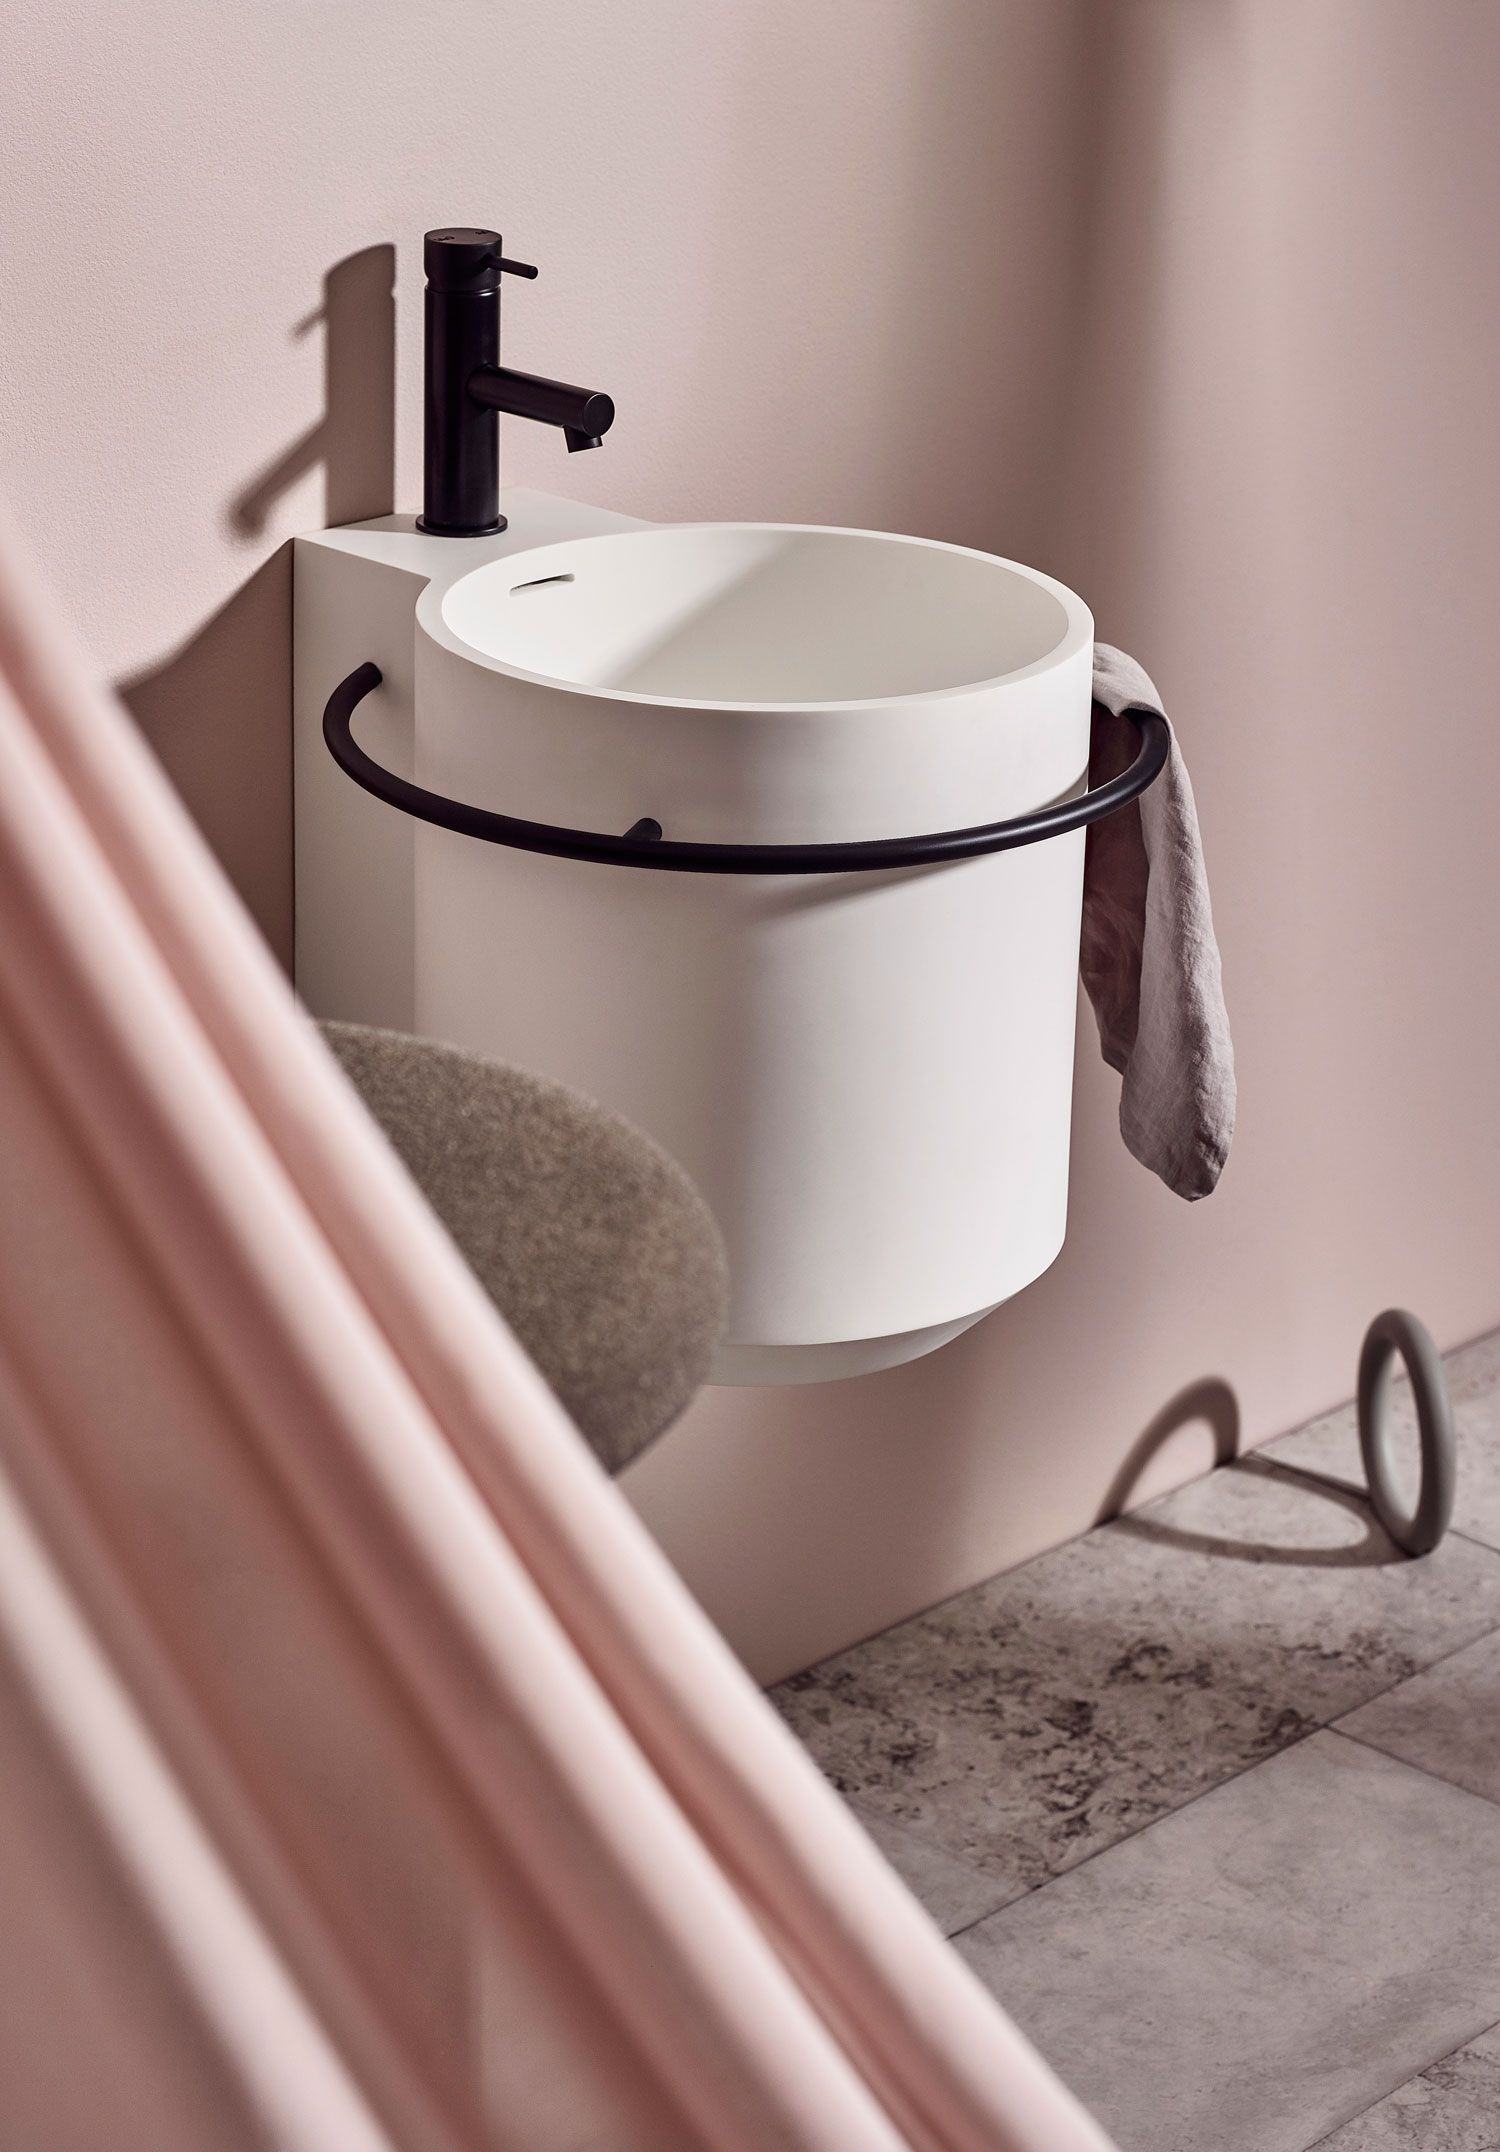 United Products Launches New Australian Bathroom Brand ...